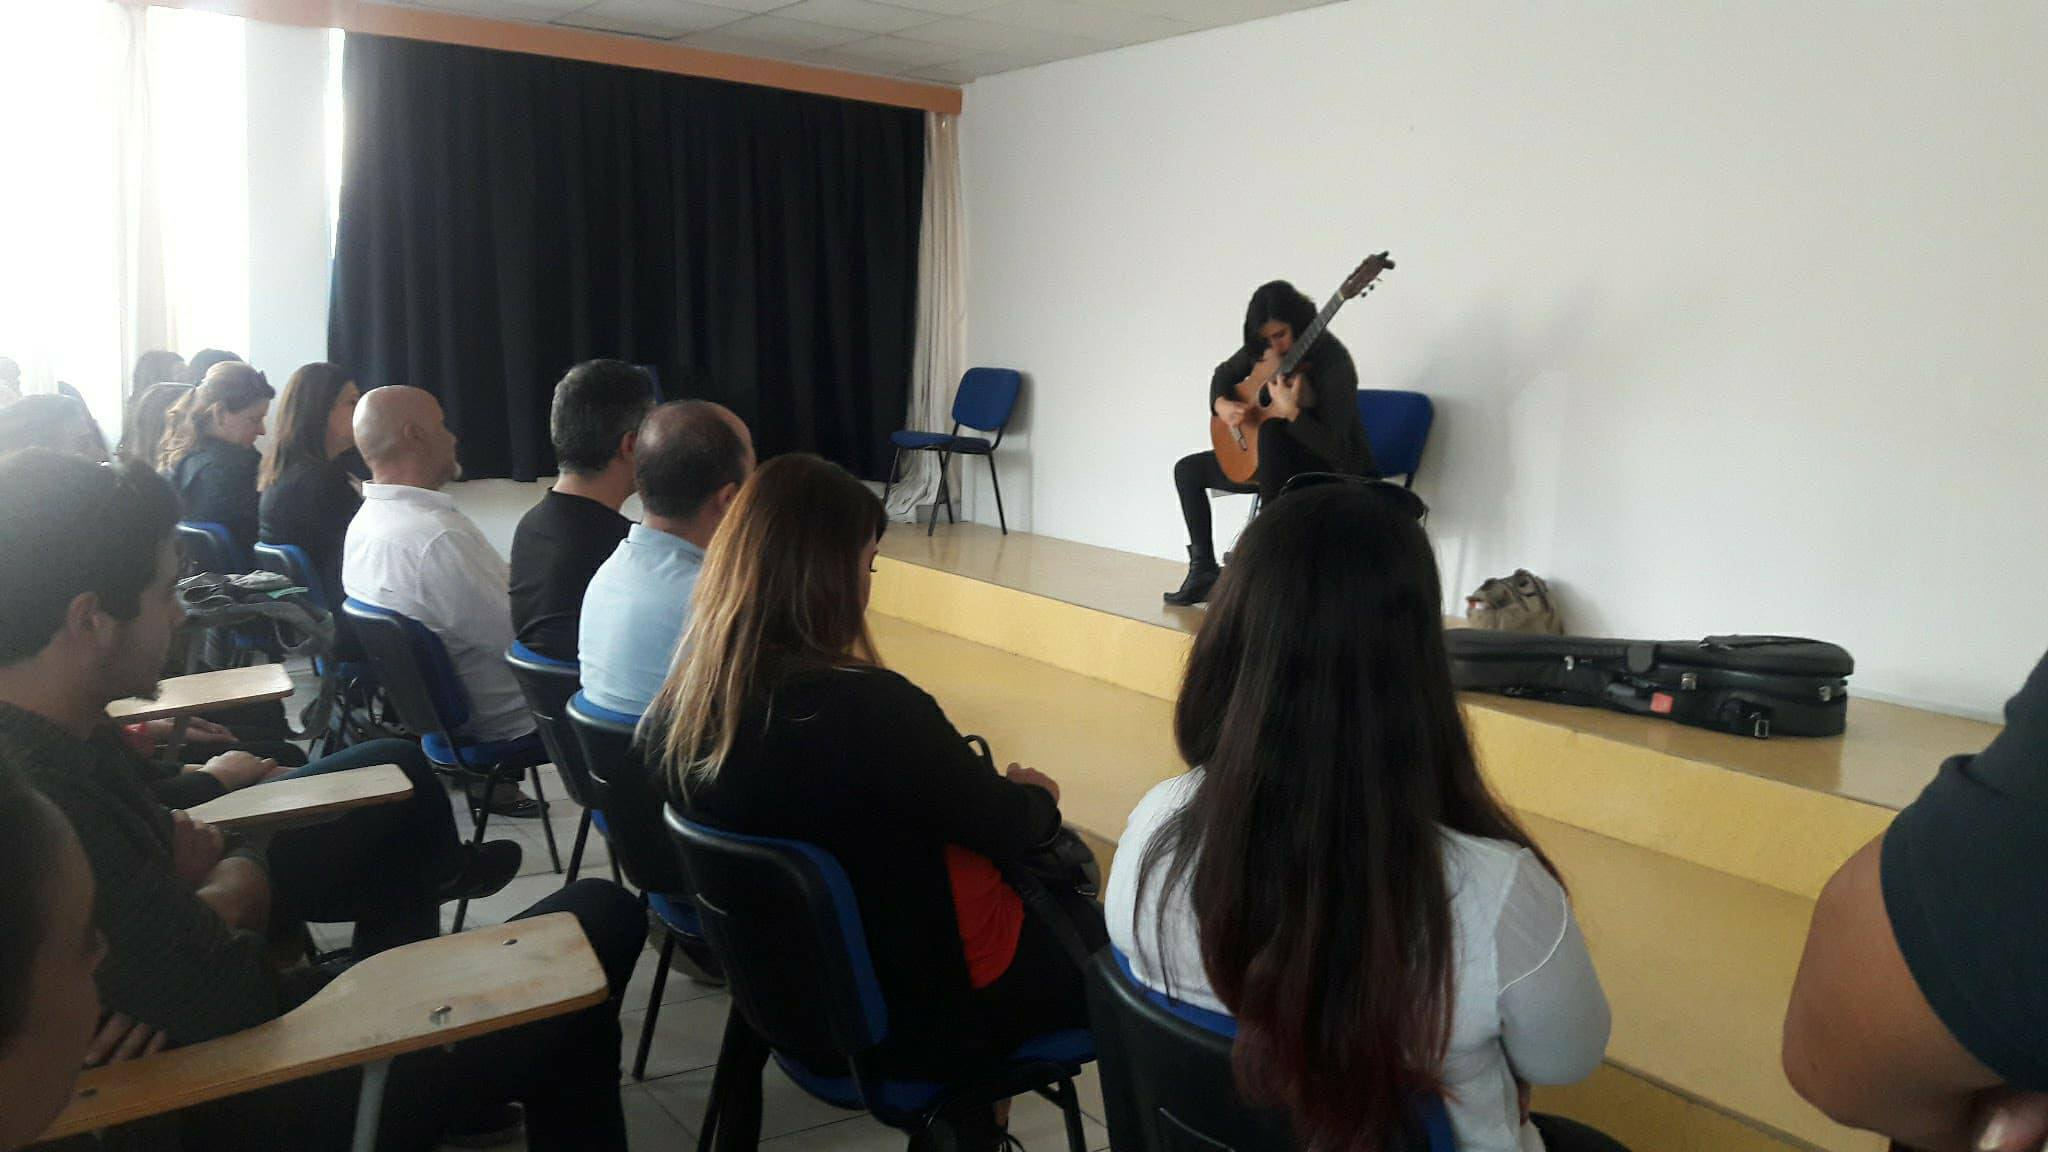 Near East University Department of Music Education hosted a World-Renowned Star: A Recital and Workshop given by Ayşegül Koca